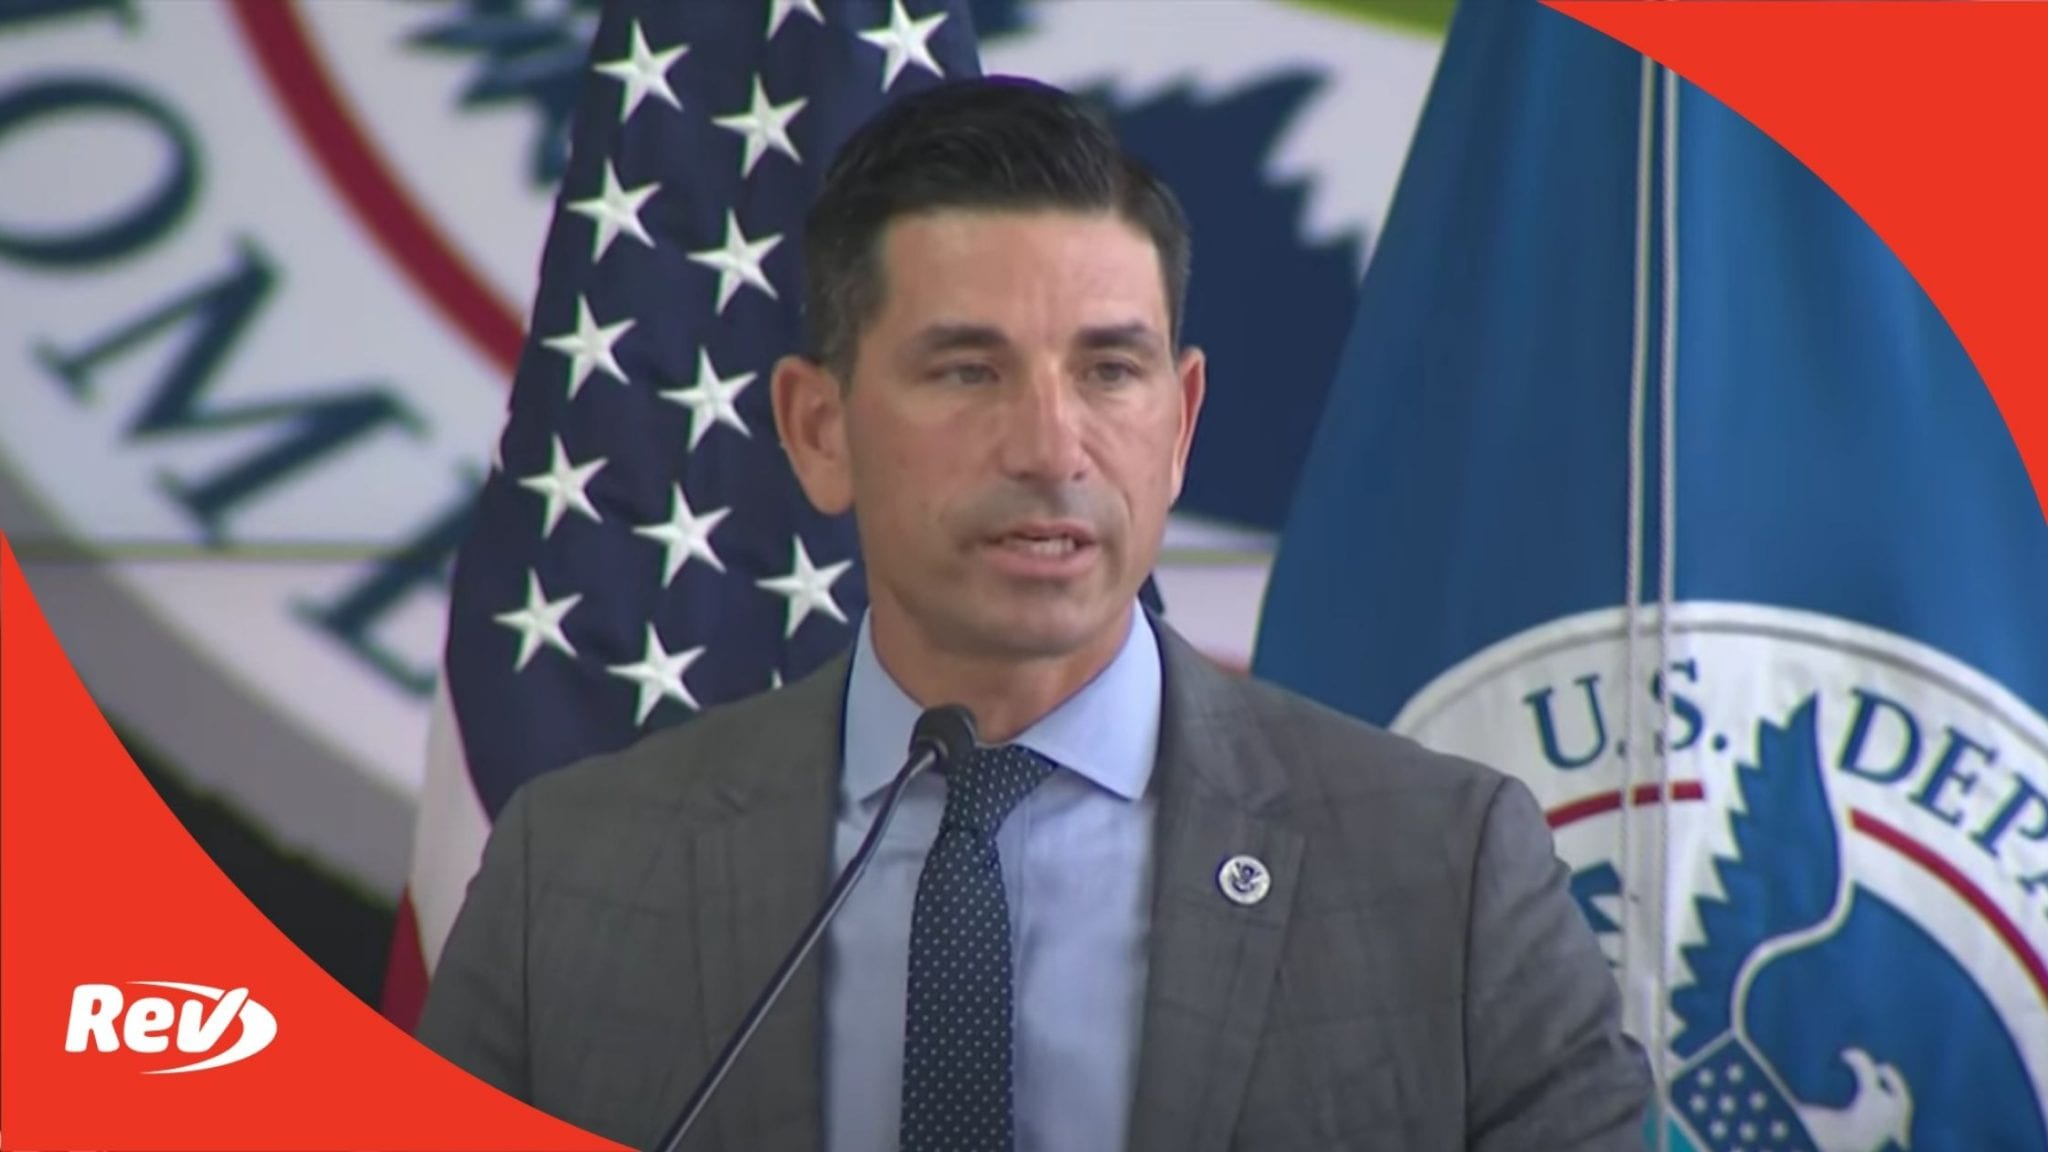 DHS Sec. Chad Wolf Press Conference Transcript: Plan to Combat Human Trafficking